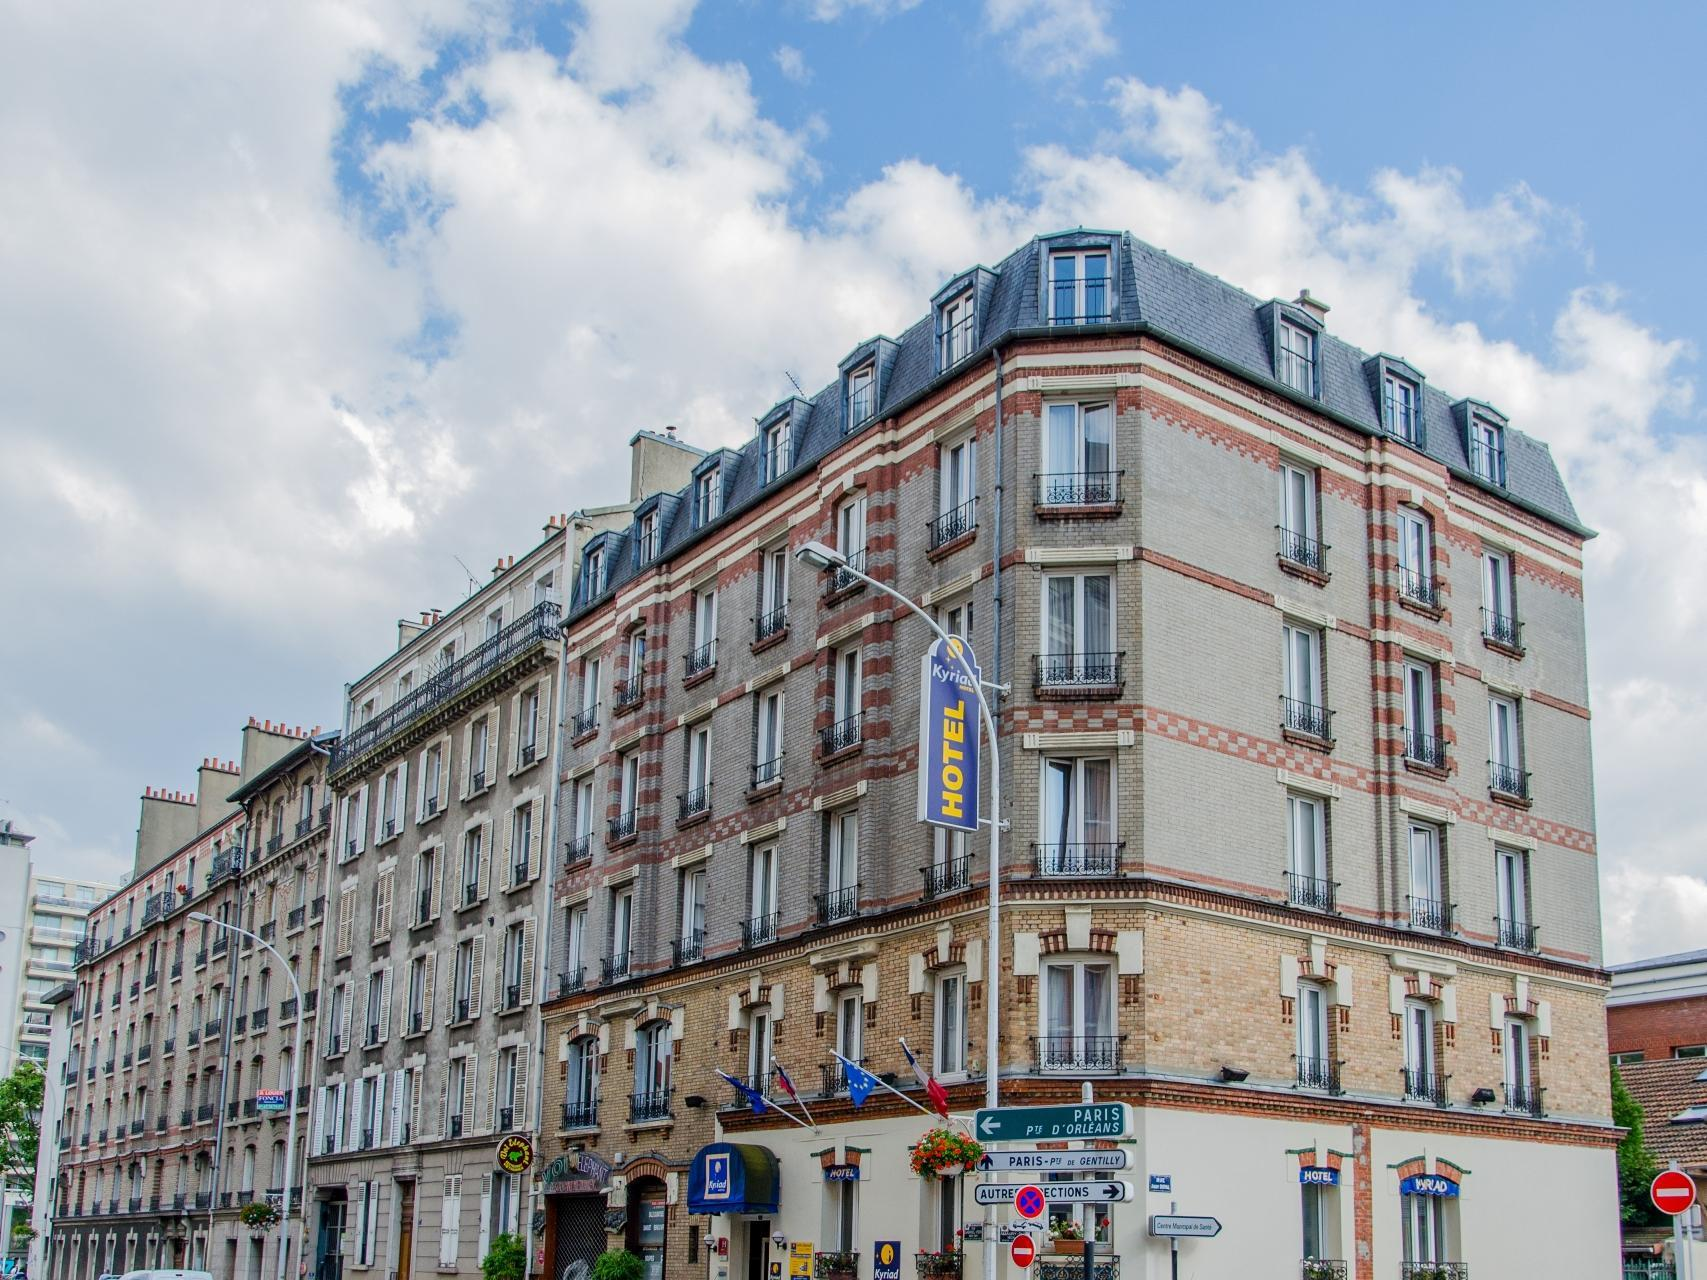 Le Meilleur Hotel Arc Paris Porte D'orleans In France Room Deals Ce Mois Ci